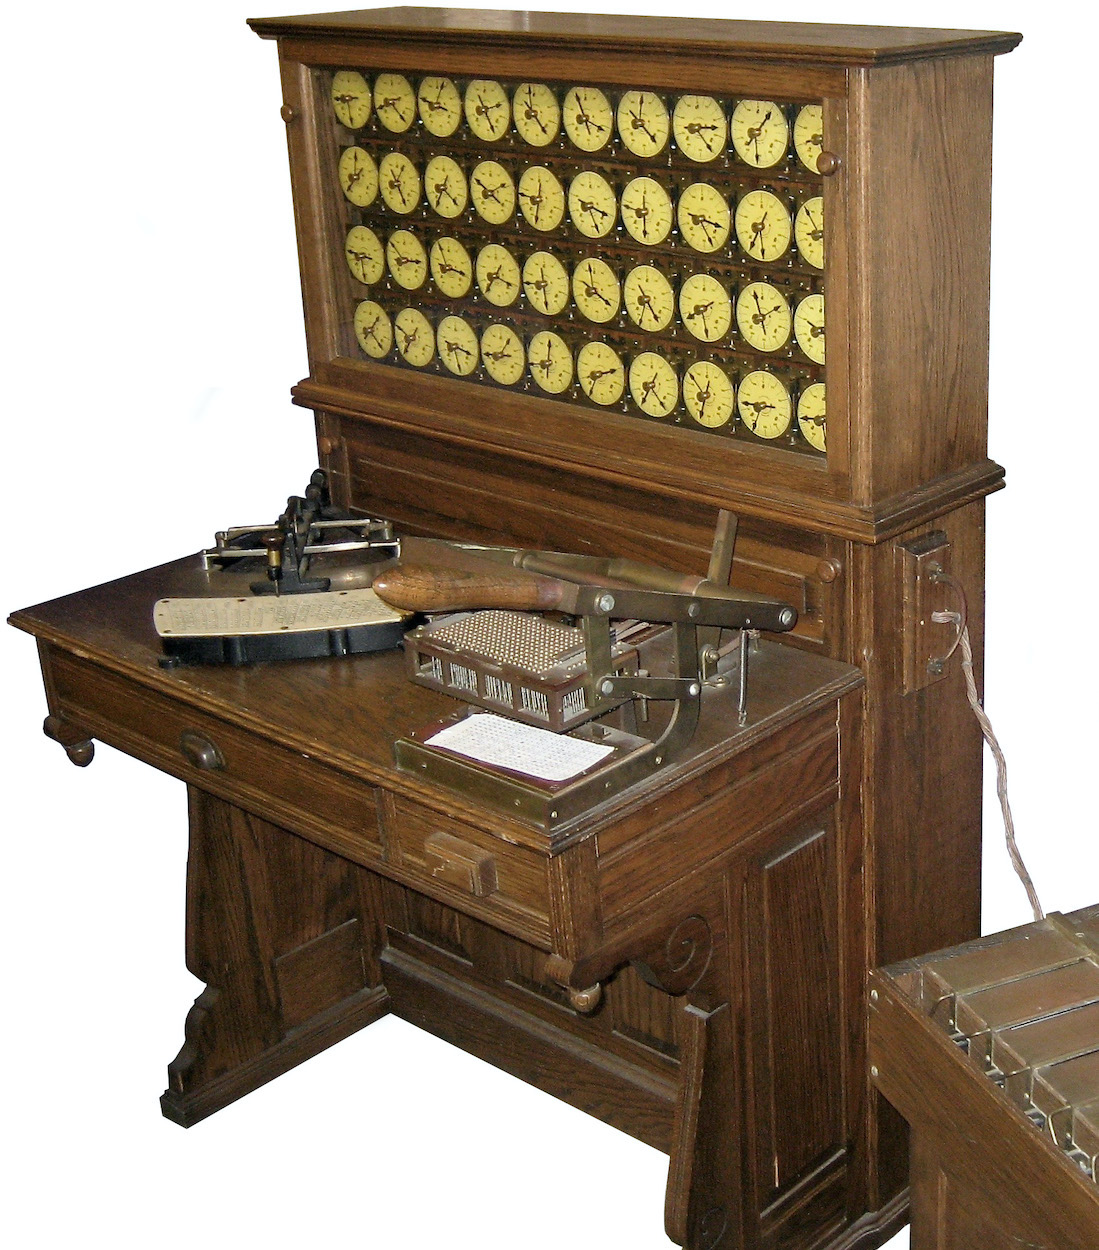 Reproduction of Hollerith's punch card devices, on top the counting clocks, on the table on the left a punching device, on the right the device for scanning the punch cards - image: Adam Schuster (CC BY 2.0), detail, exempted